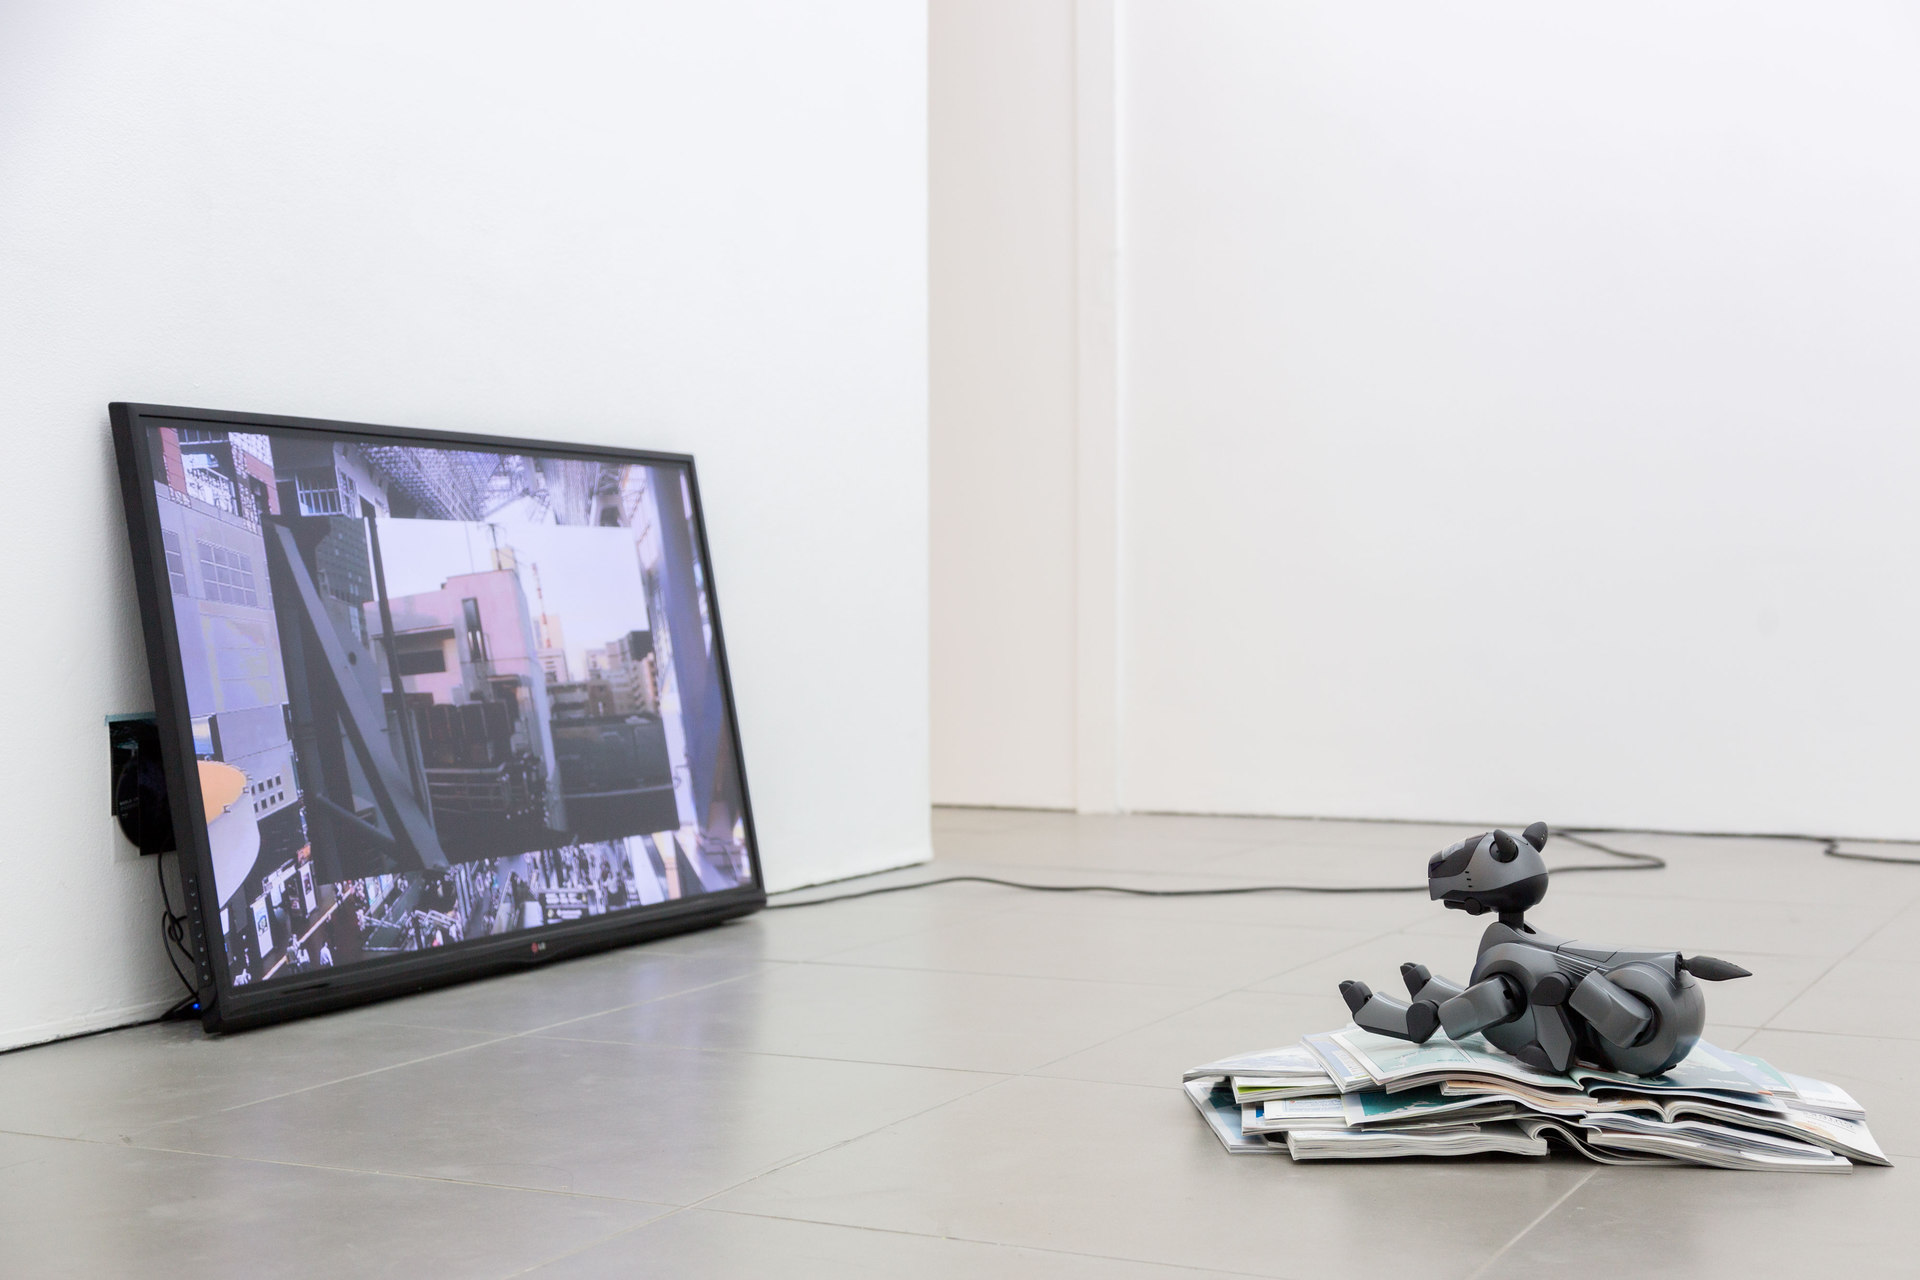 Yuri Pattison, Free Traveller, 'feel like you are actually there', 2014, 'Aibo Overcoming Modernity', 2014 (rear gallery), Cell Project Space